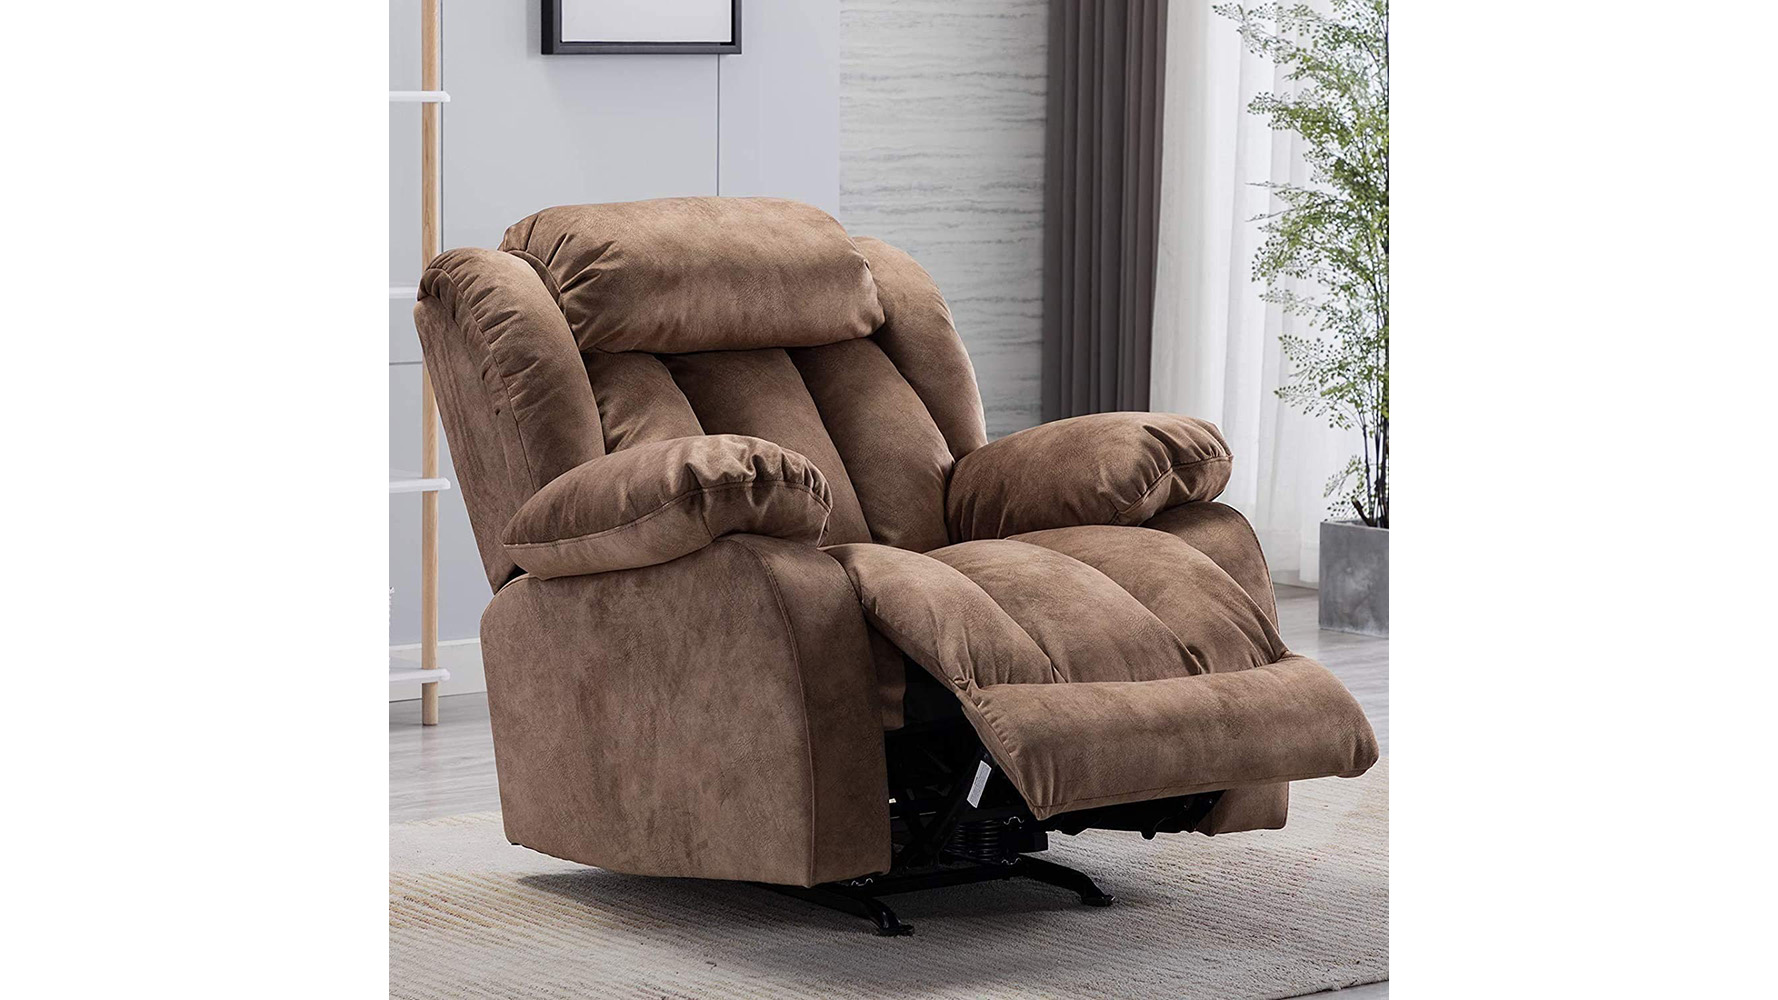 Canmov recliner